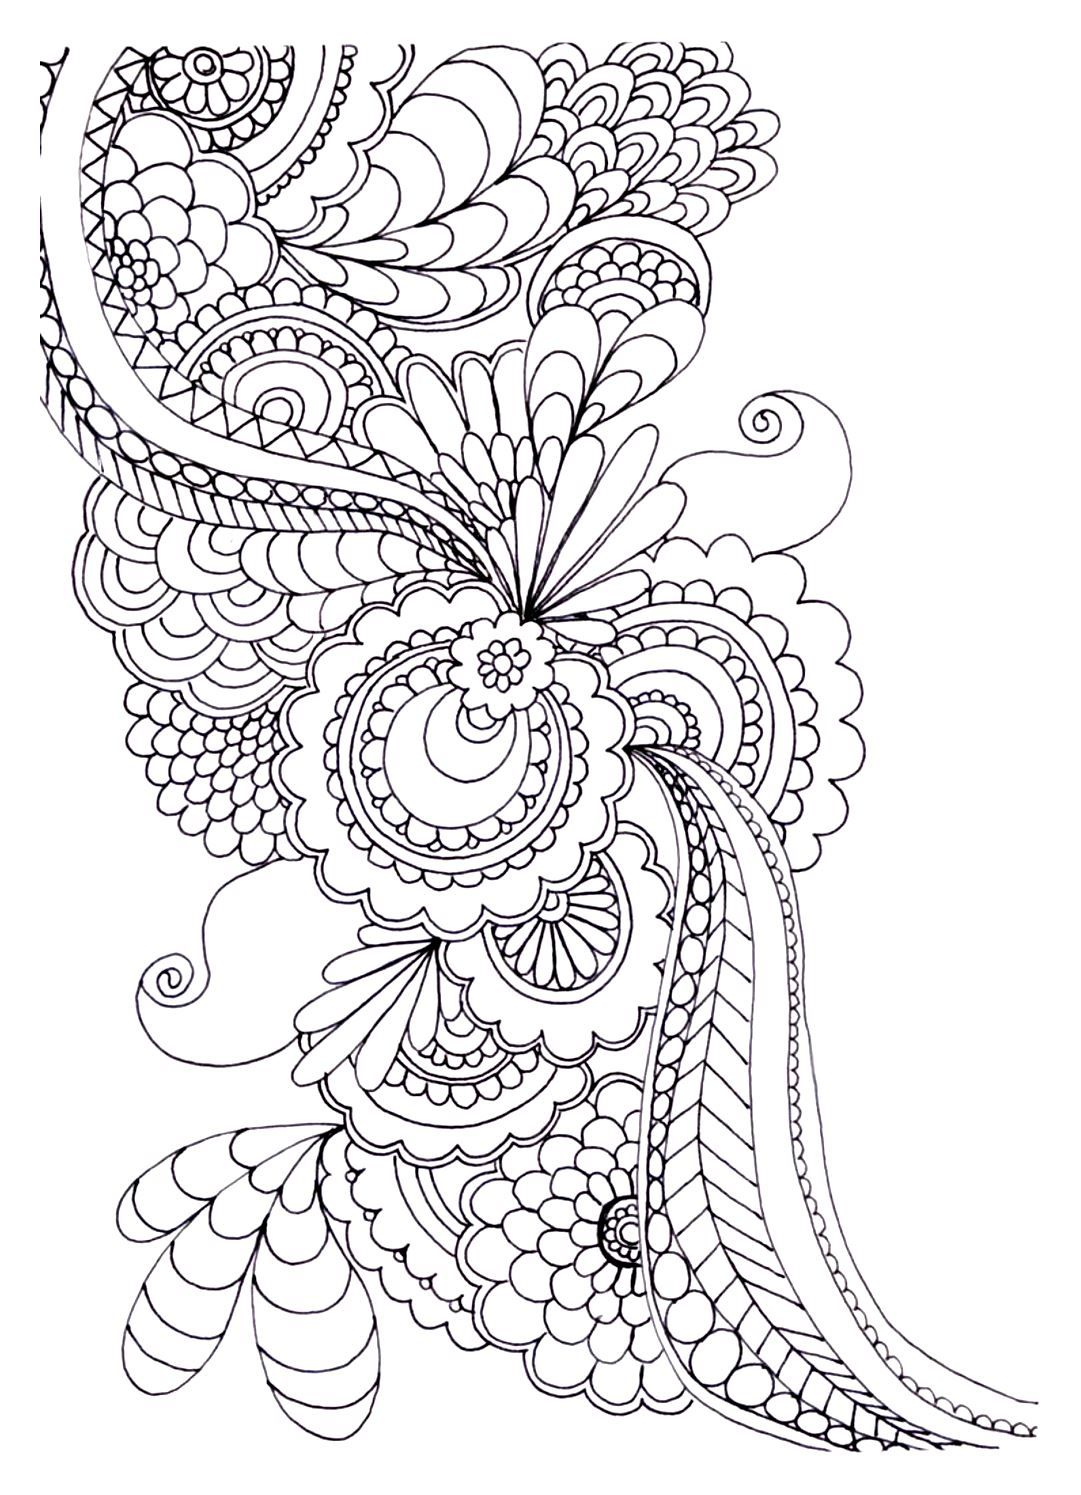 to print this free coloring page coloring adult zen anti stress to print drawing flowers click on the printer icon at the right pinterest drawing